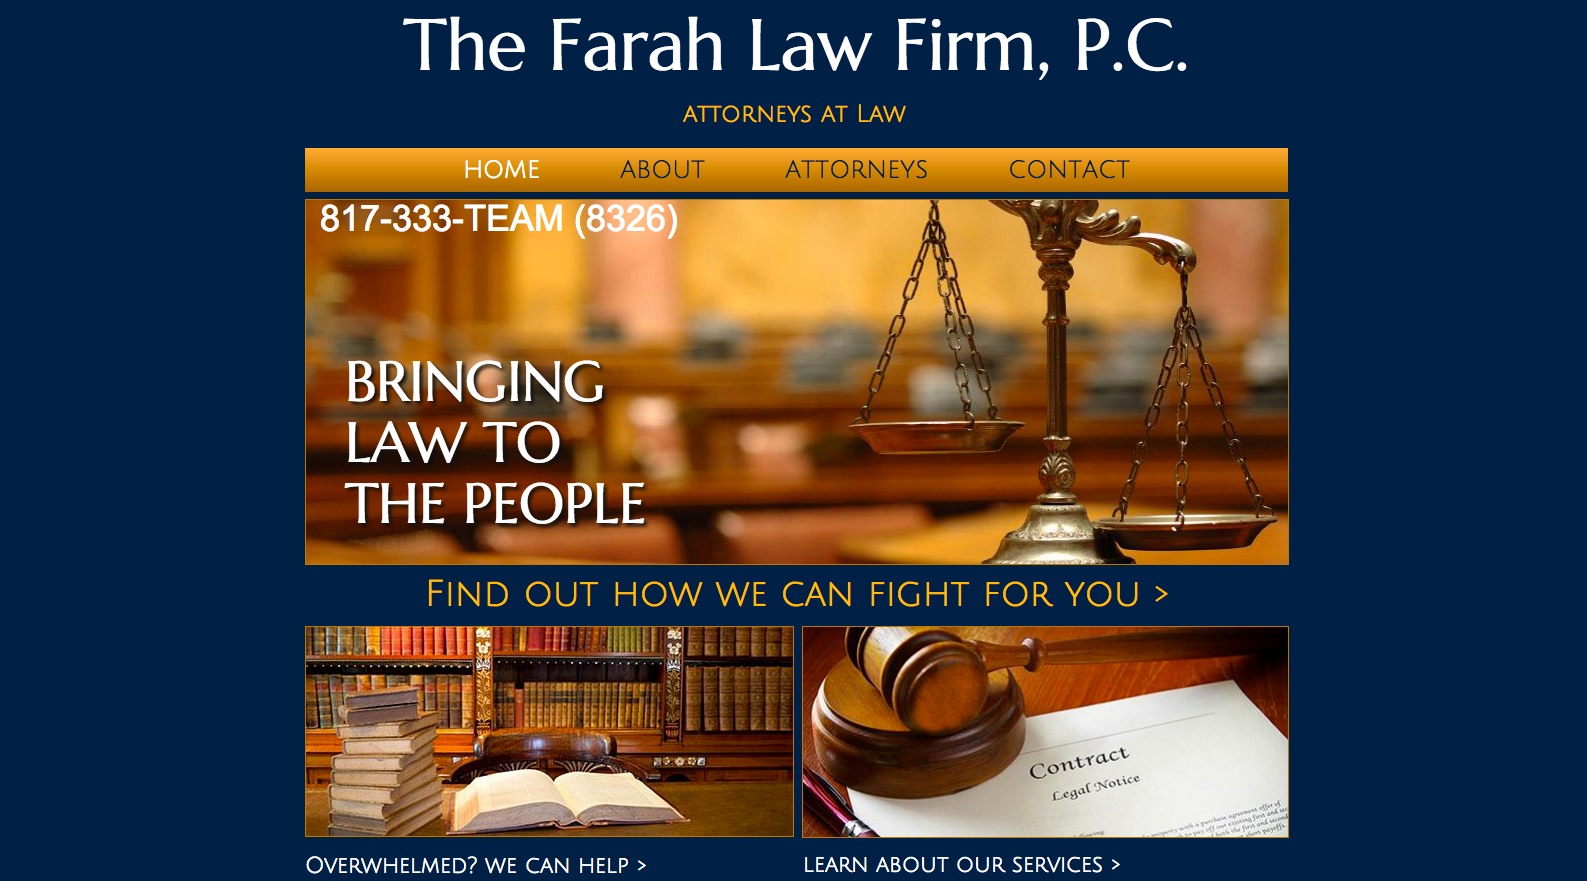 old website of The Farah Law Firm